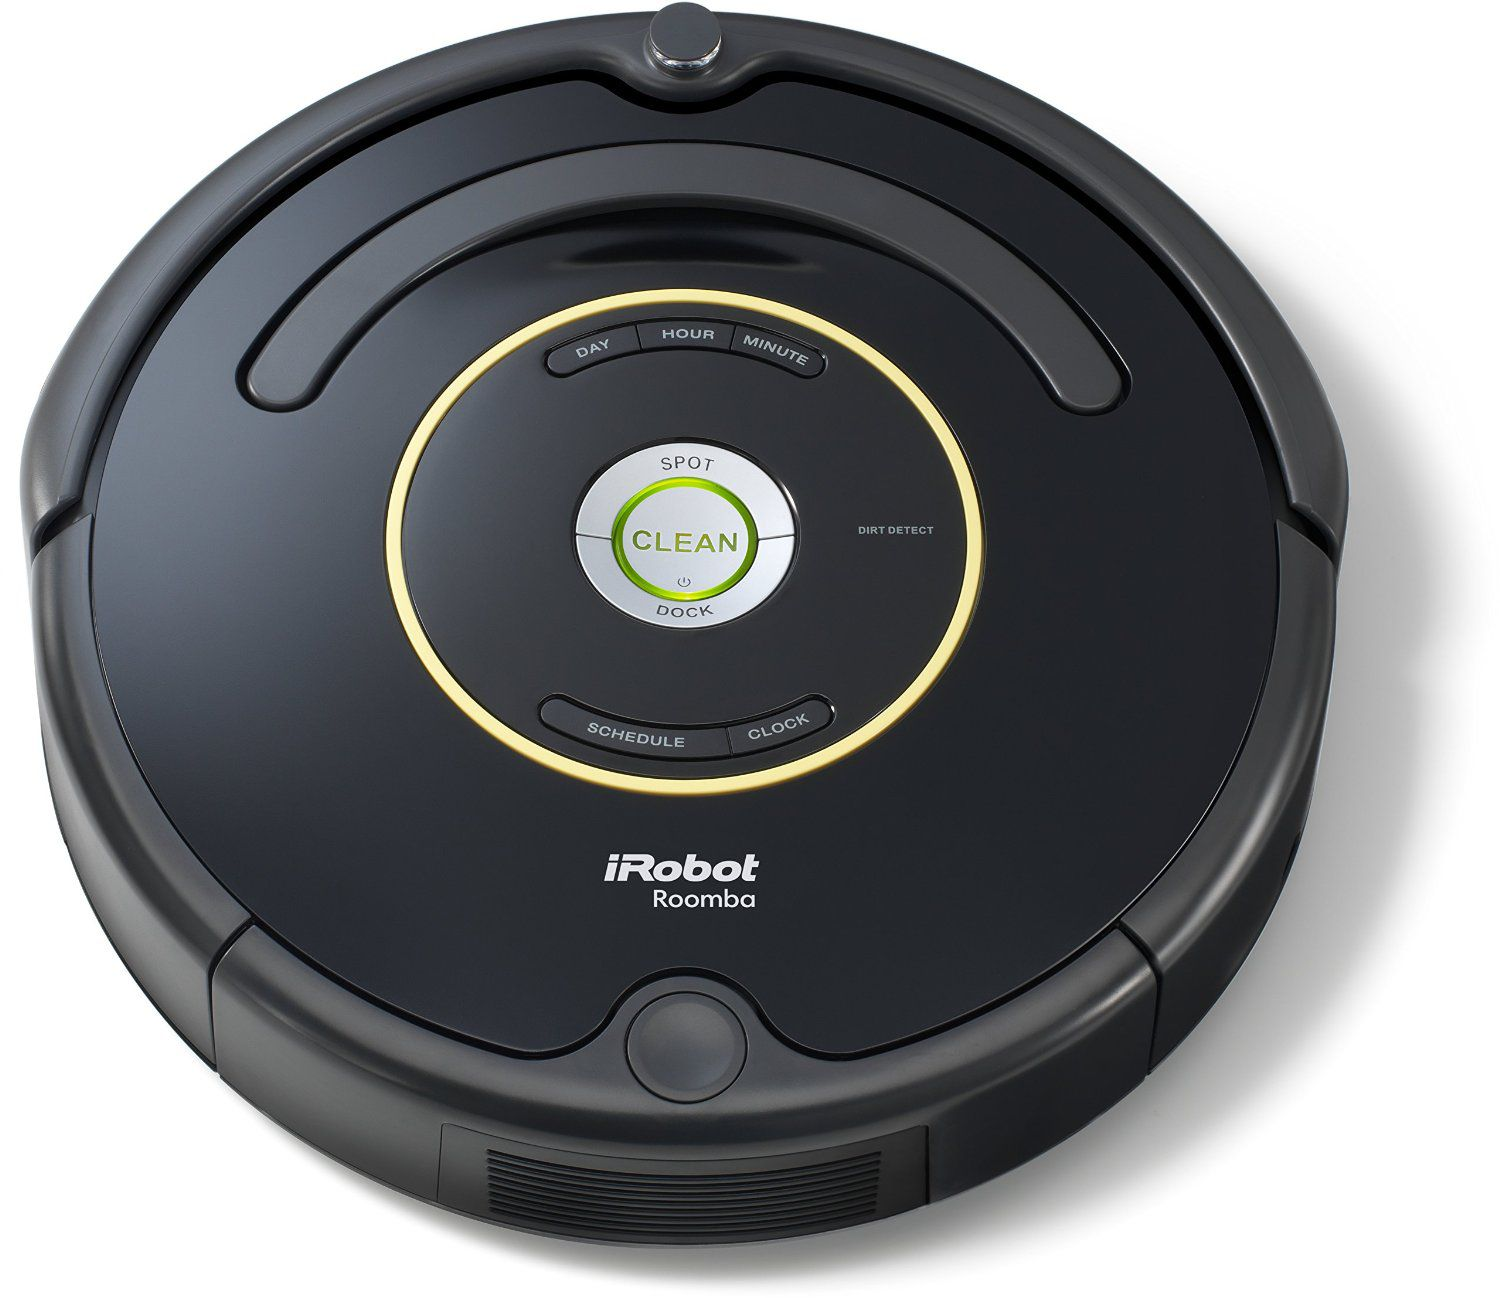 irobot roomba 650 robot aspirateur autonome pour une maison plus propre. Black Bedroom Furniture Sets. Home Design Ideas